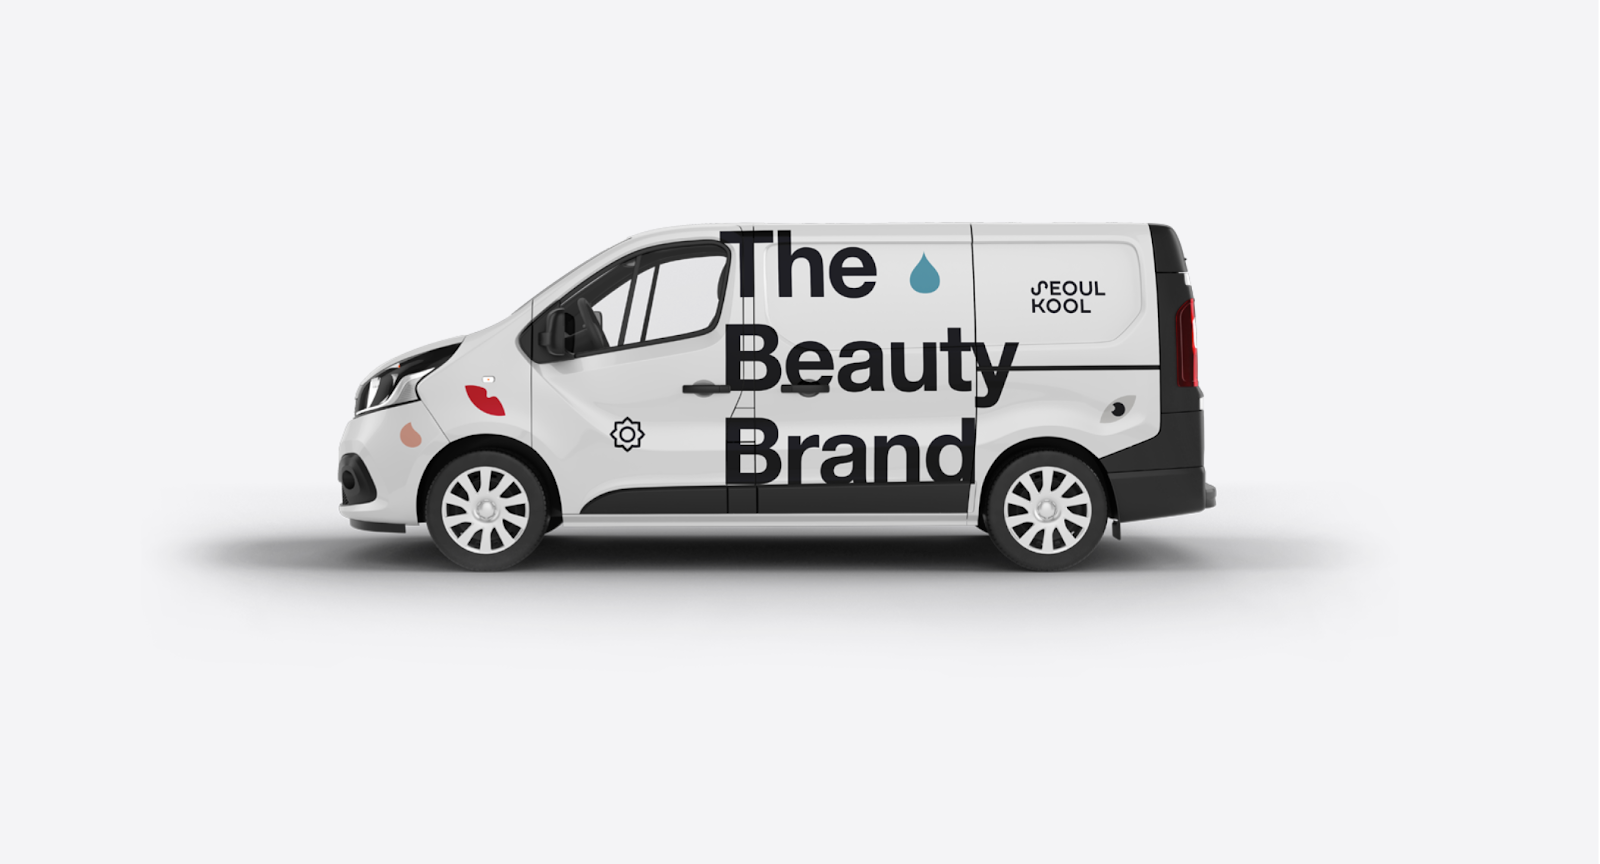 Branded advertising on van